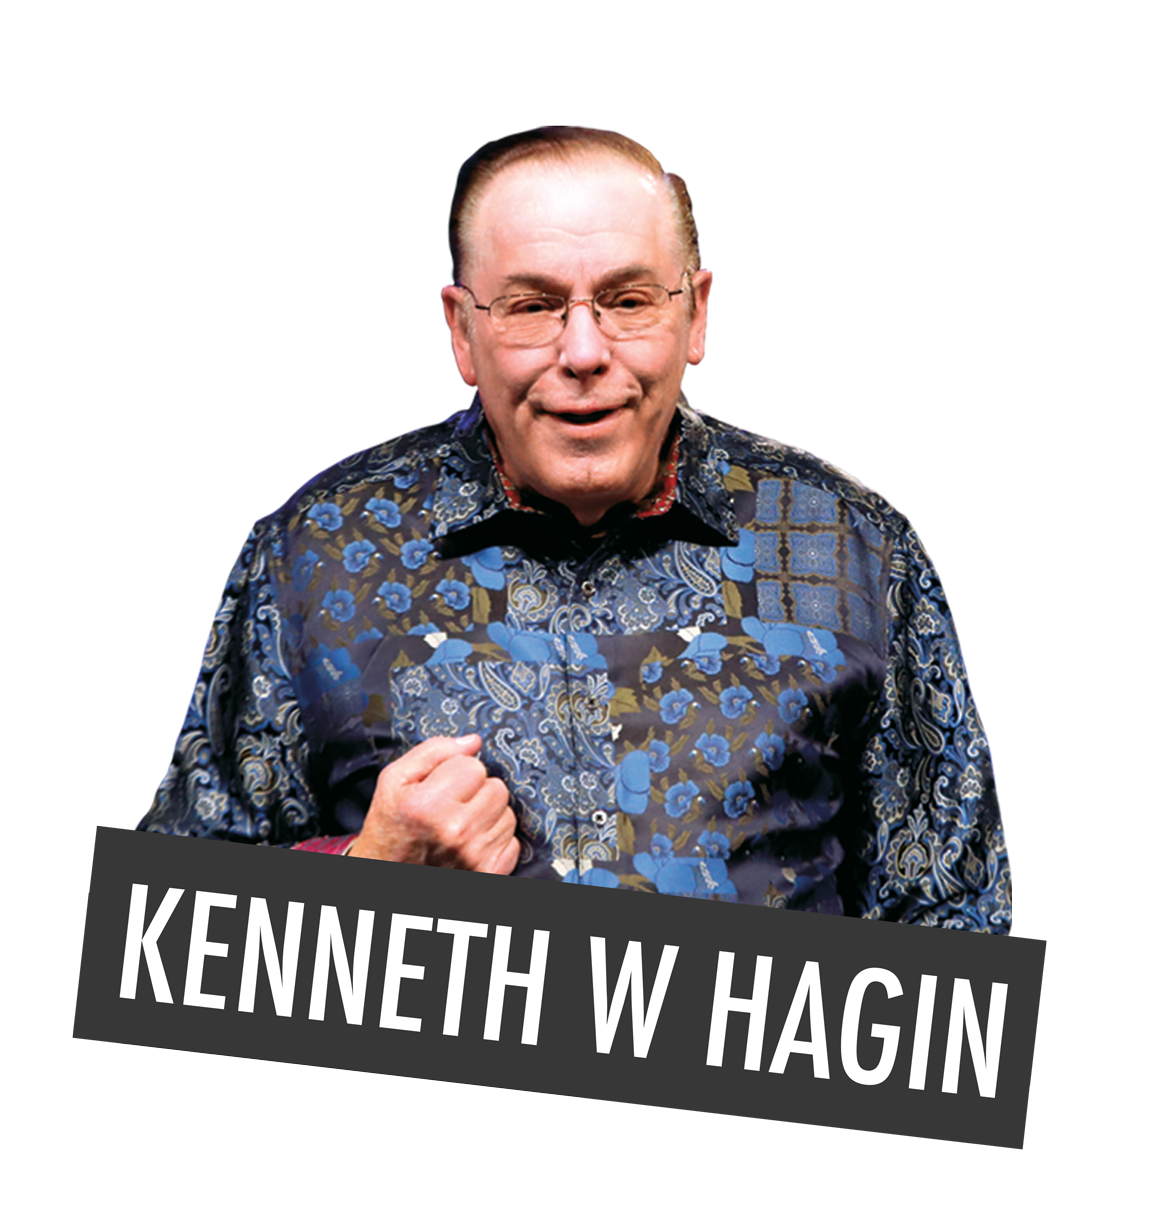 Kenneth W. Hagin Image for A Call to Arms